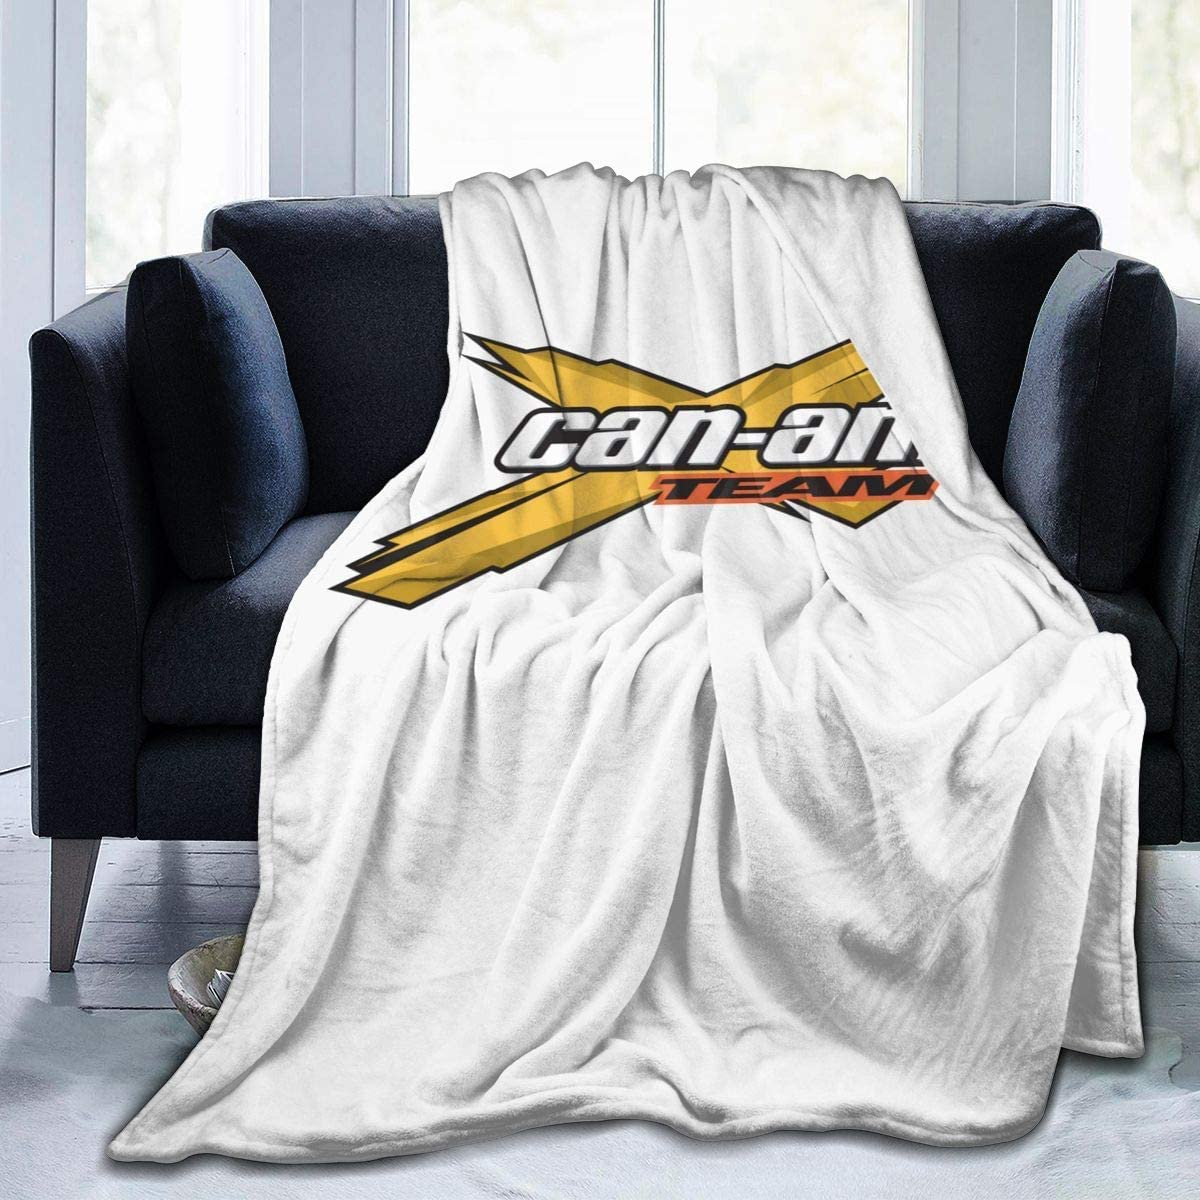 Engshi Mantas para Cama Can Am Team Soft and Warm Throw Blanket Digital Printed Ultra-Soft Micro Fleece Blanket